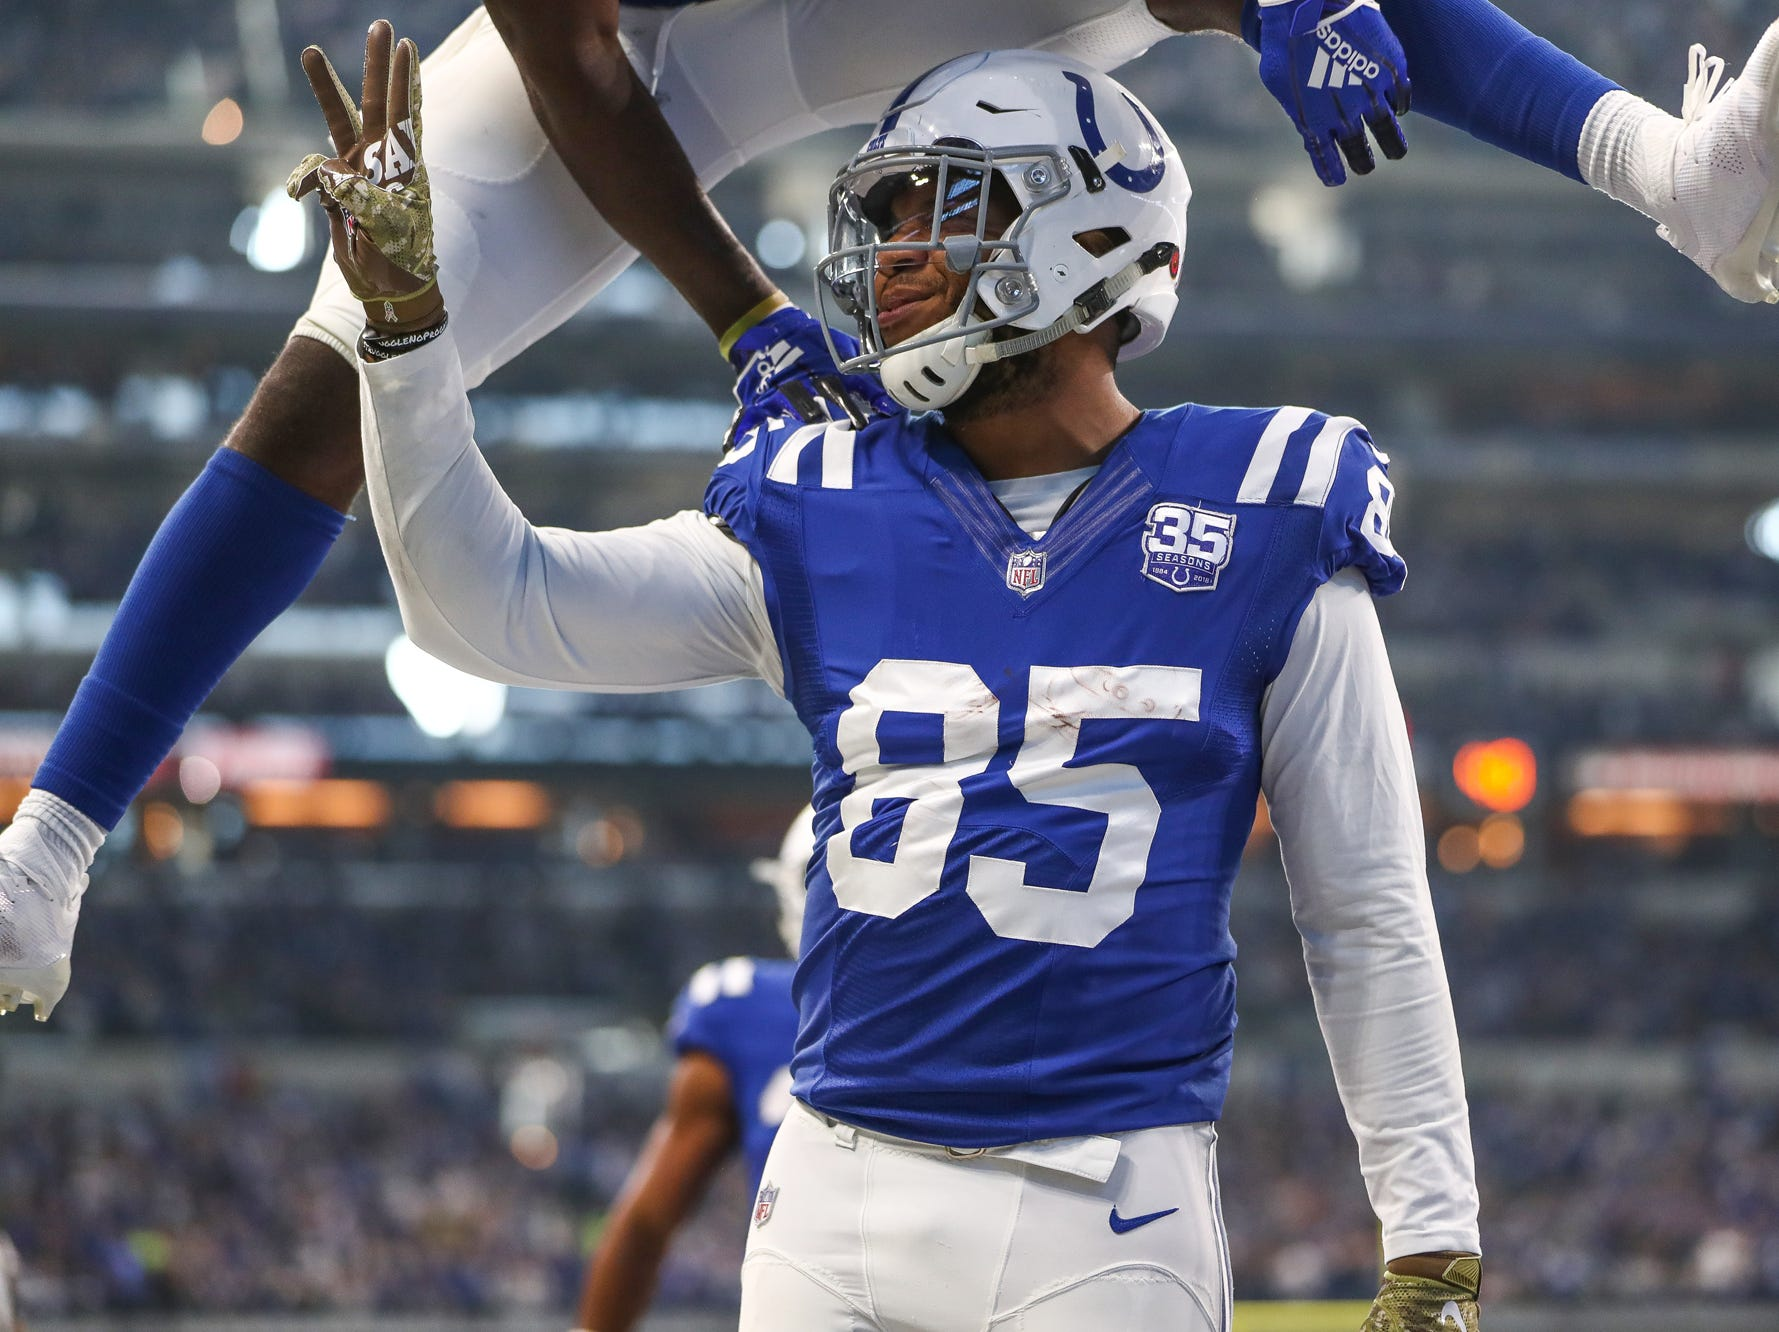 Indianapolis Colts wide receiver Zach Pascal (14) jumps over tight end Eric Ebron (85) as he celebrates his third touchdown of the game against the Jacksonville Jaguars at Lucas Oil Stadium on Sunday, Nov. 11, 2018.